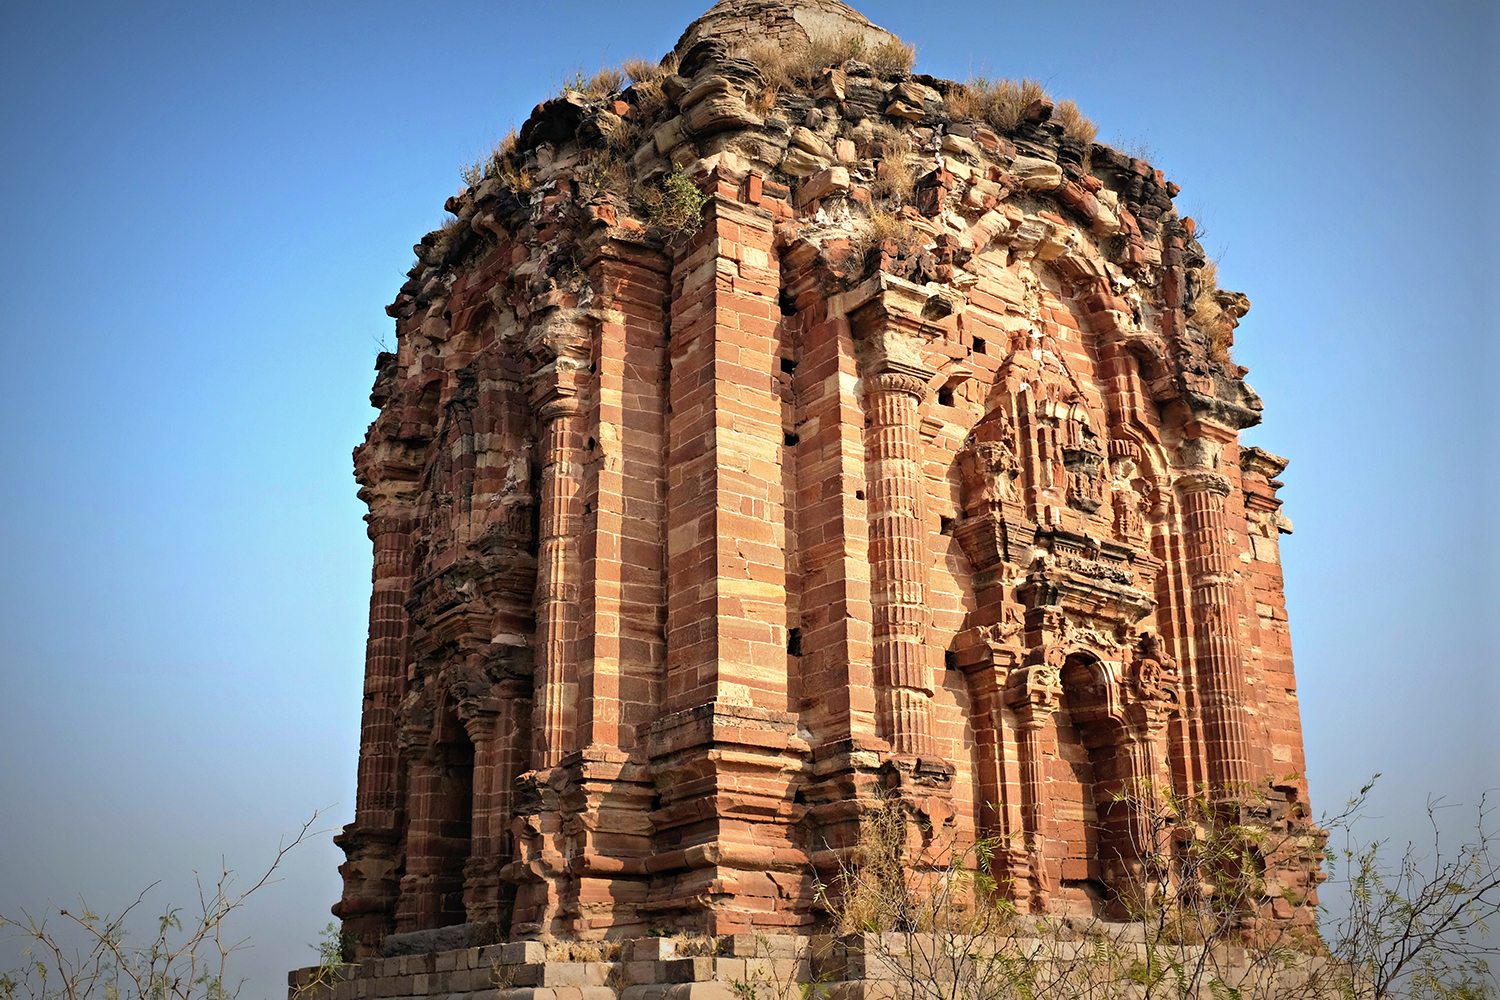 The temples in Malot are built using red sandstone and follow Kashmiri traditions.